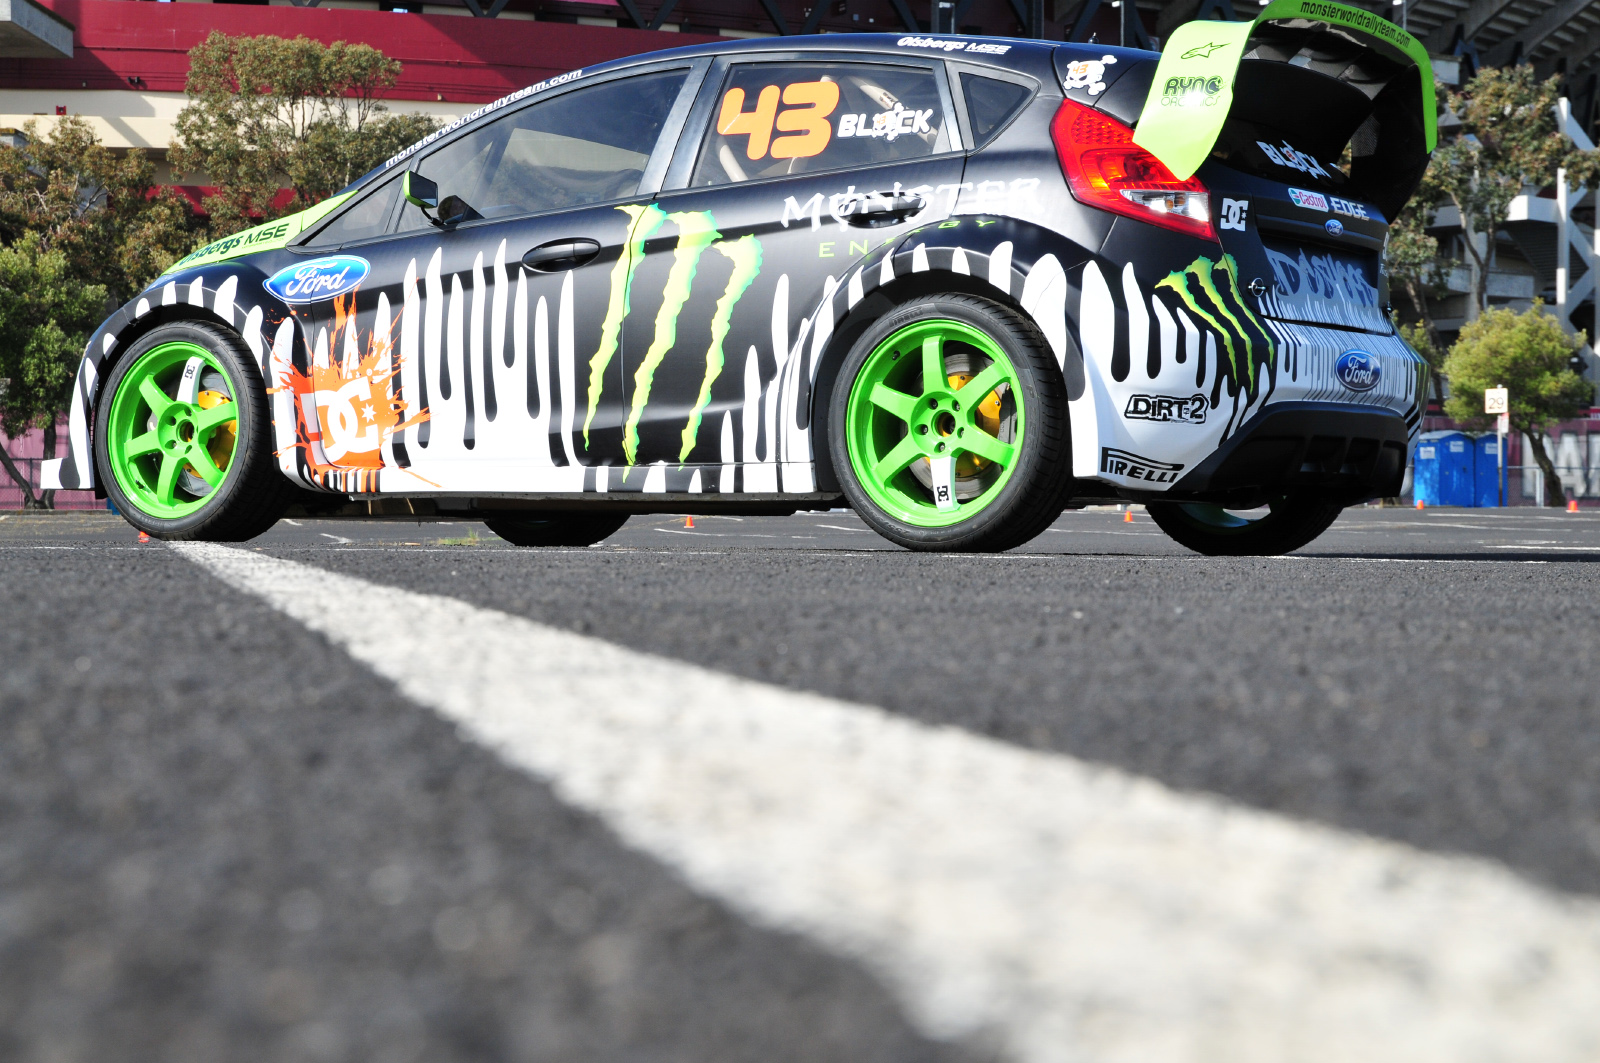 http://4.bp.blogspot.com/-VIk387pAxvM/UA65nWZtaiI/AAAAAAAAAd4/GWFkIhf_HU8/s1600/monsters_cars_ford_ken_block_fiesta_monster_energy_desktop_1600x1063_wallpaper-1120412.jpg